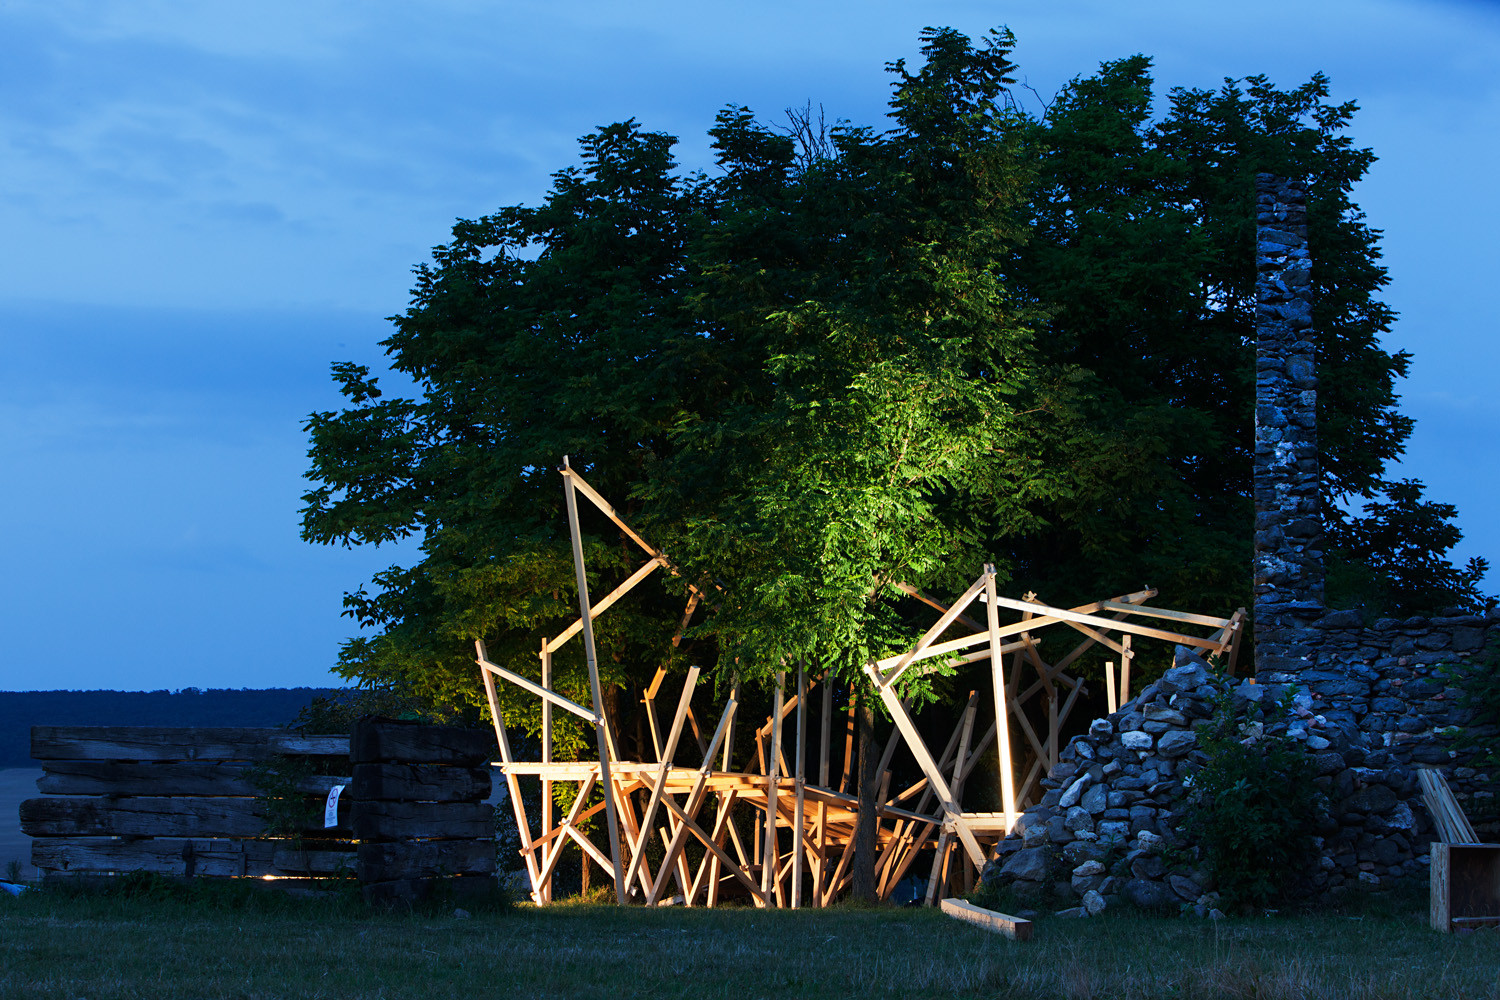 Salvador Gilabert Sanz's project at this year's Hello Wood camp. Image © Tamás Bujnovszky